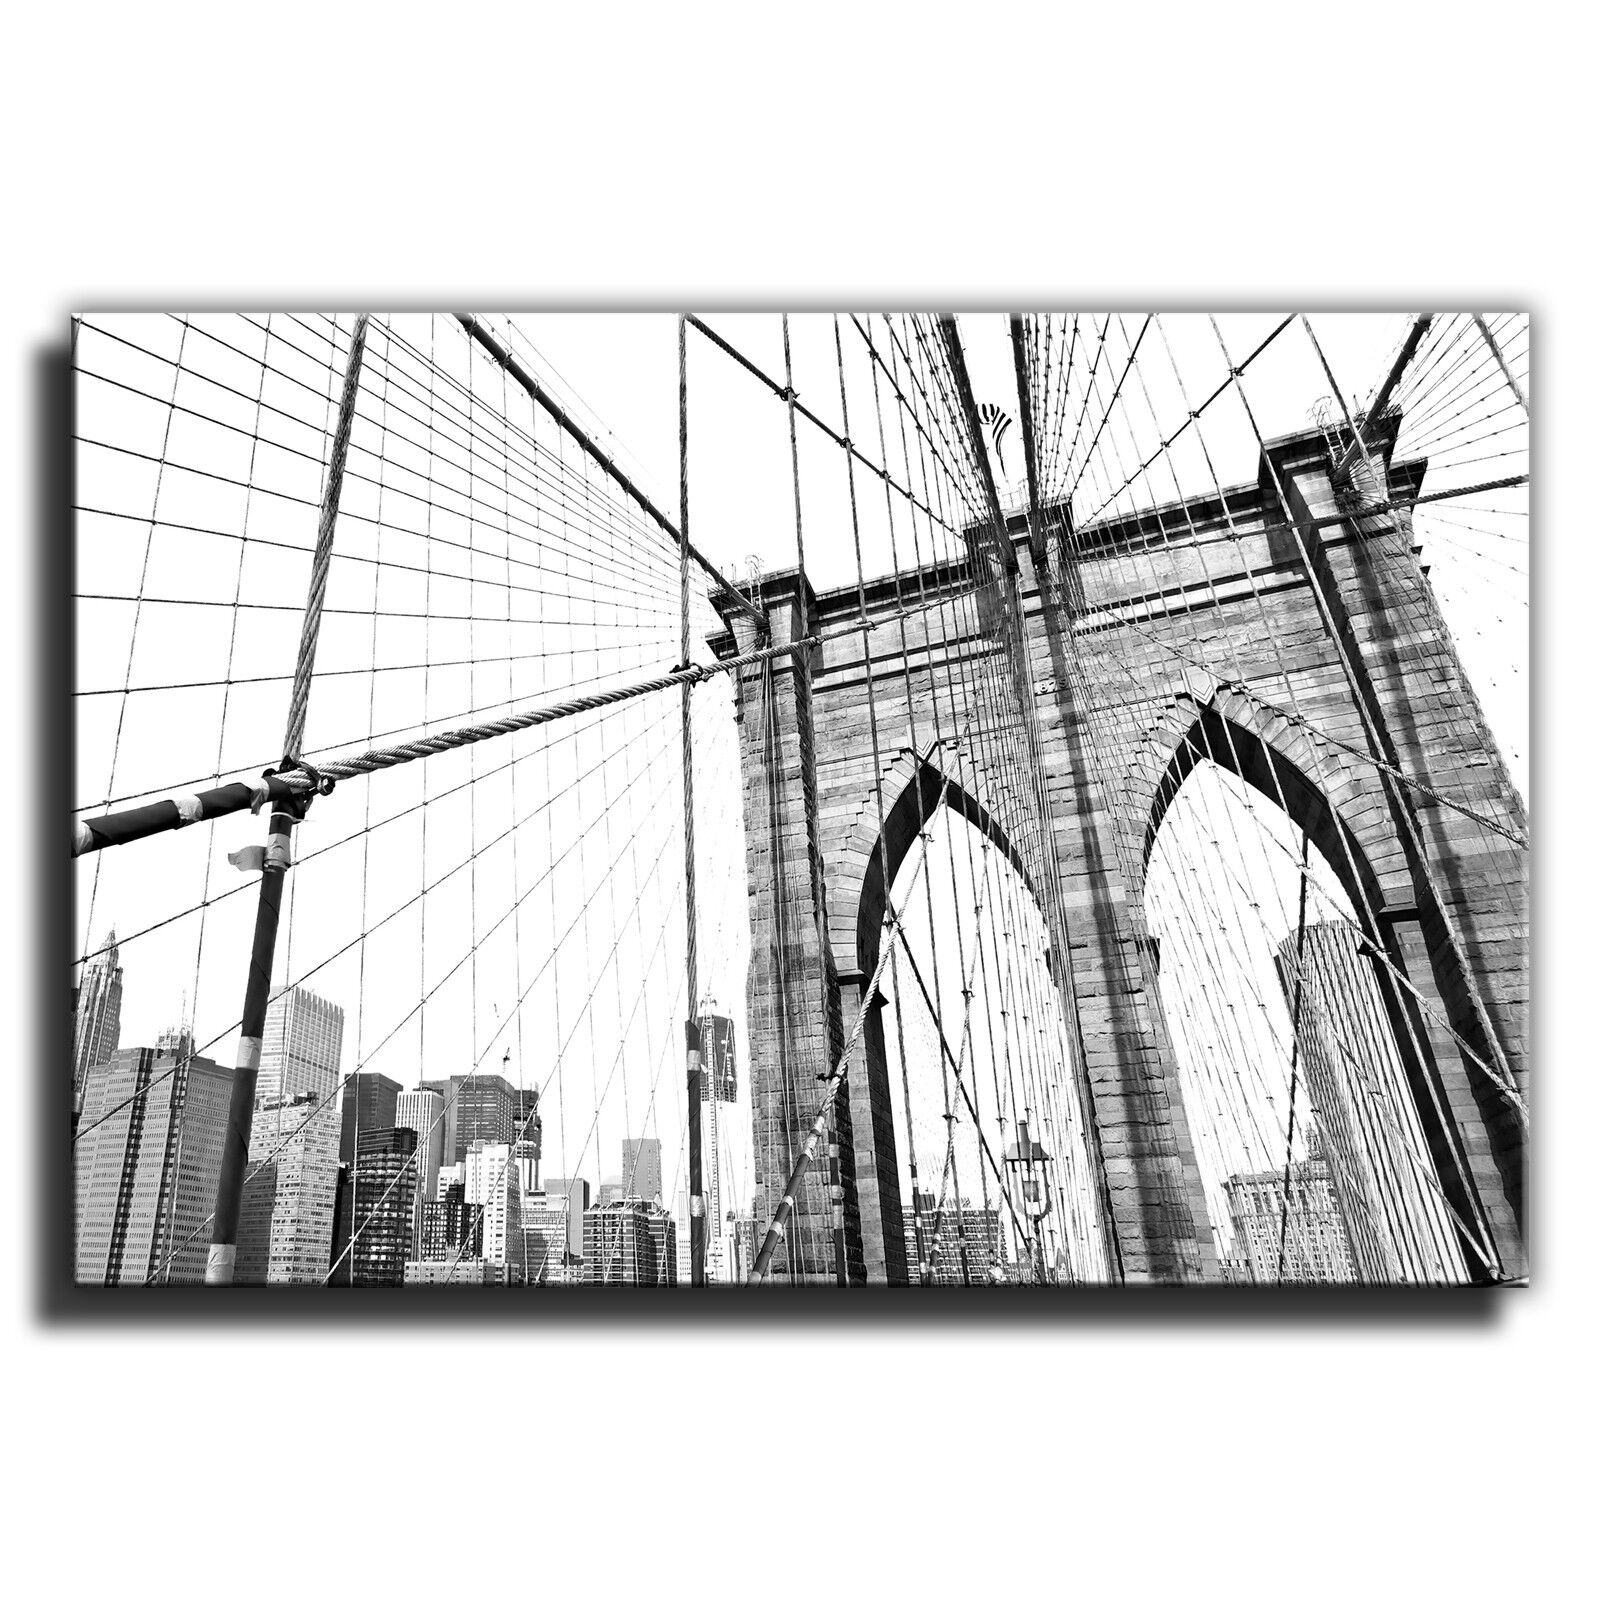 New york brooklyn pont paysage photo unique toile murale art photo paysage print 32 46b4aa